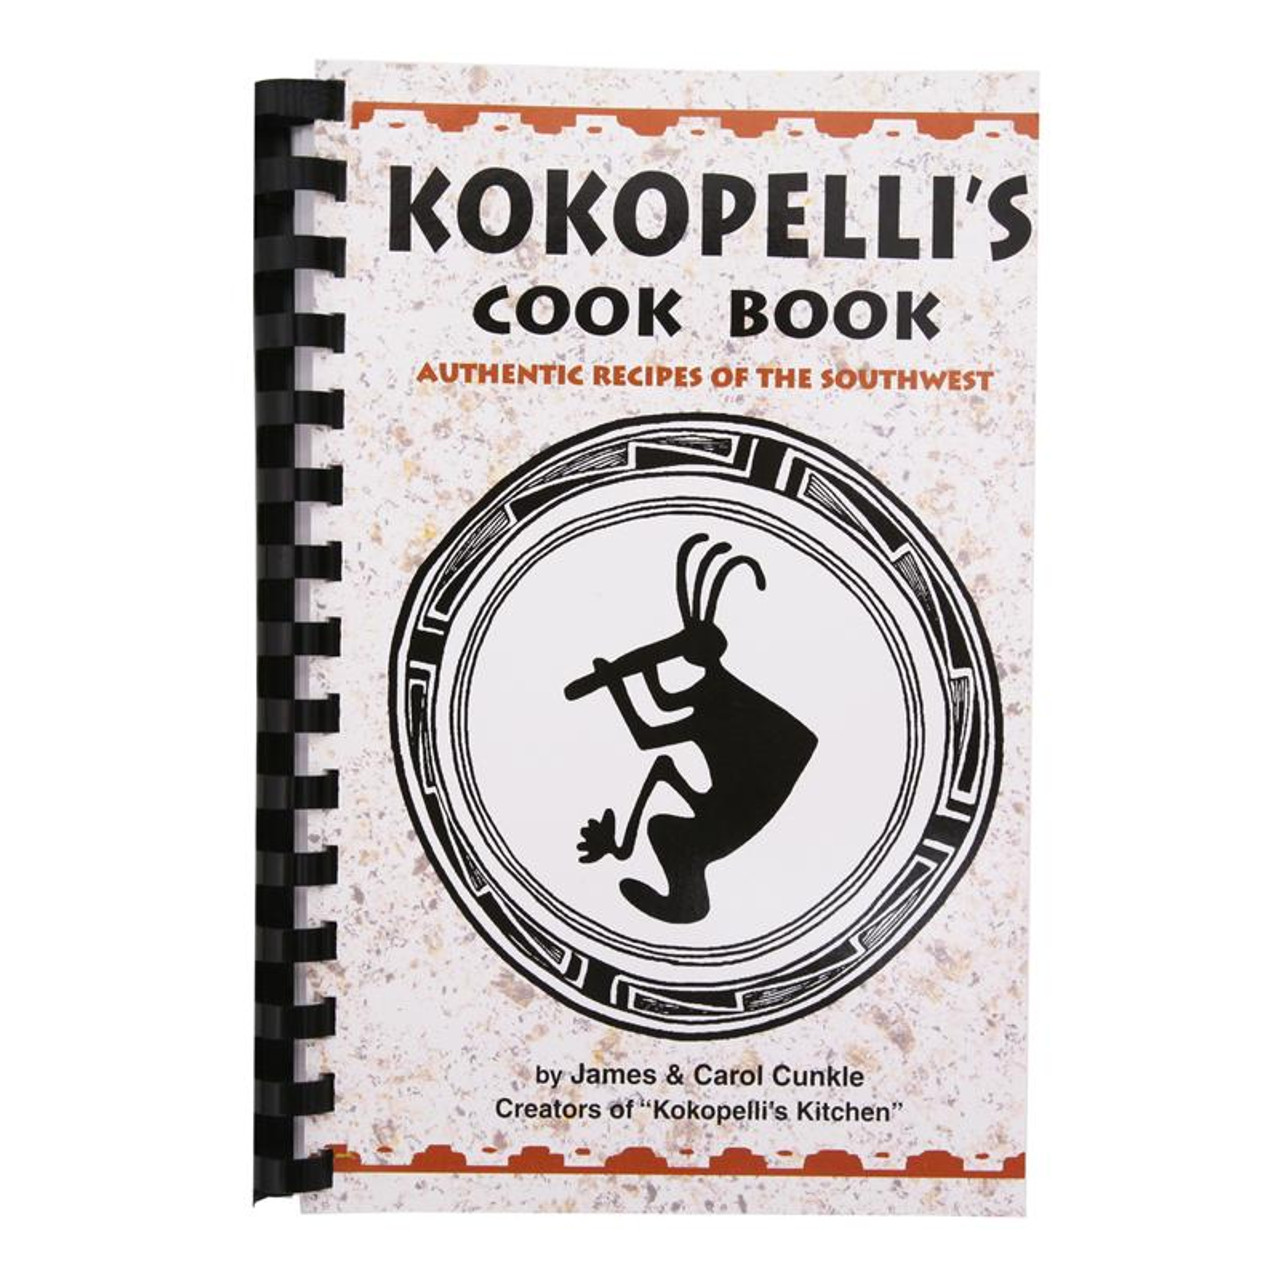 Kokopelli's Cook Book